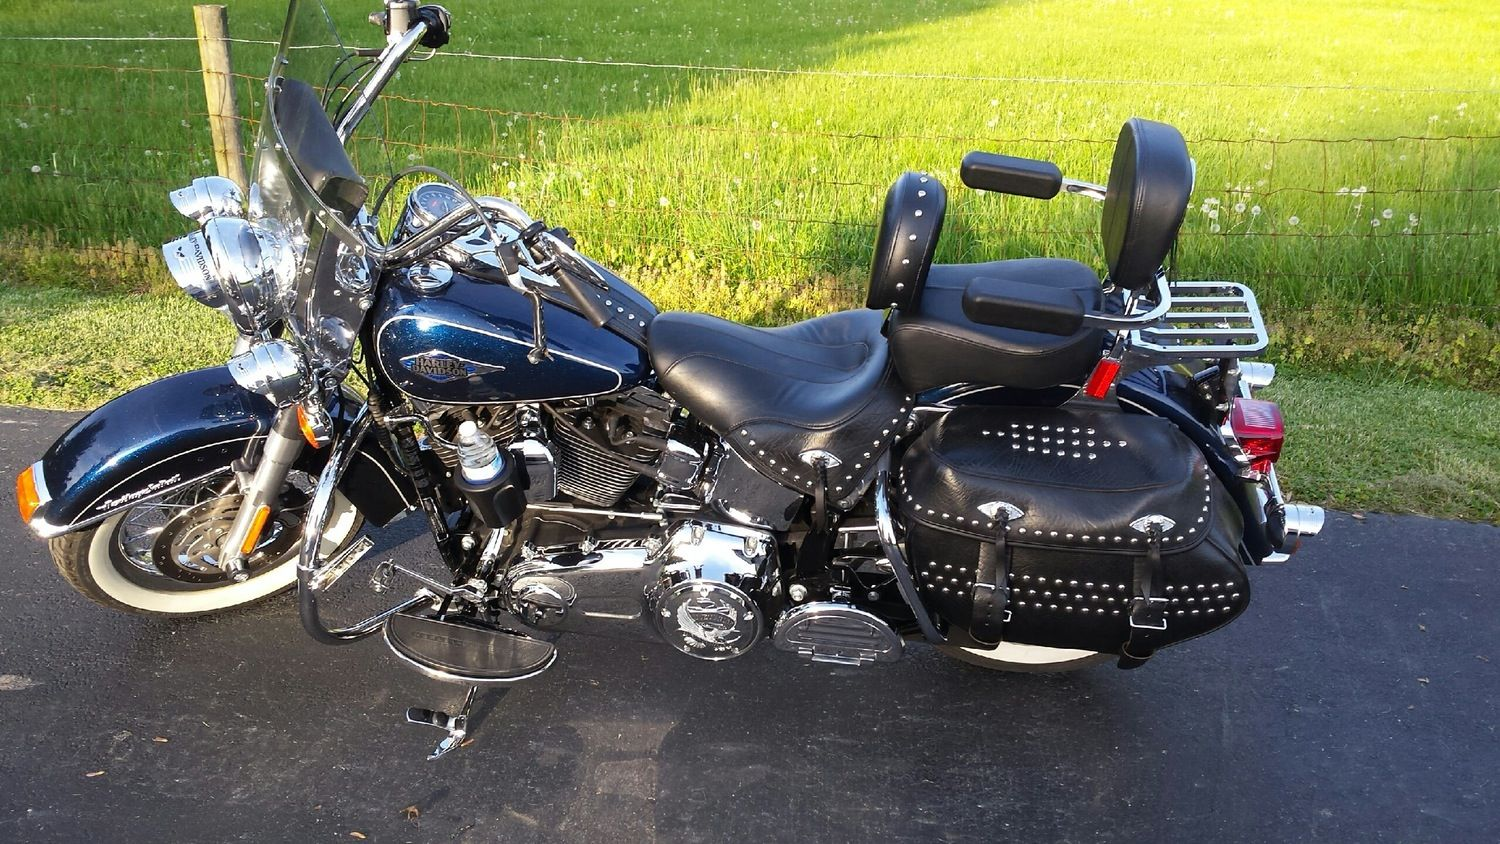 Pin By Barry On Big Bike Things Universal Passenger Armrests